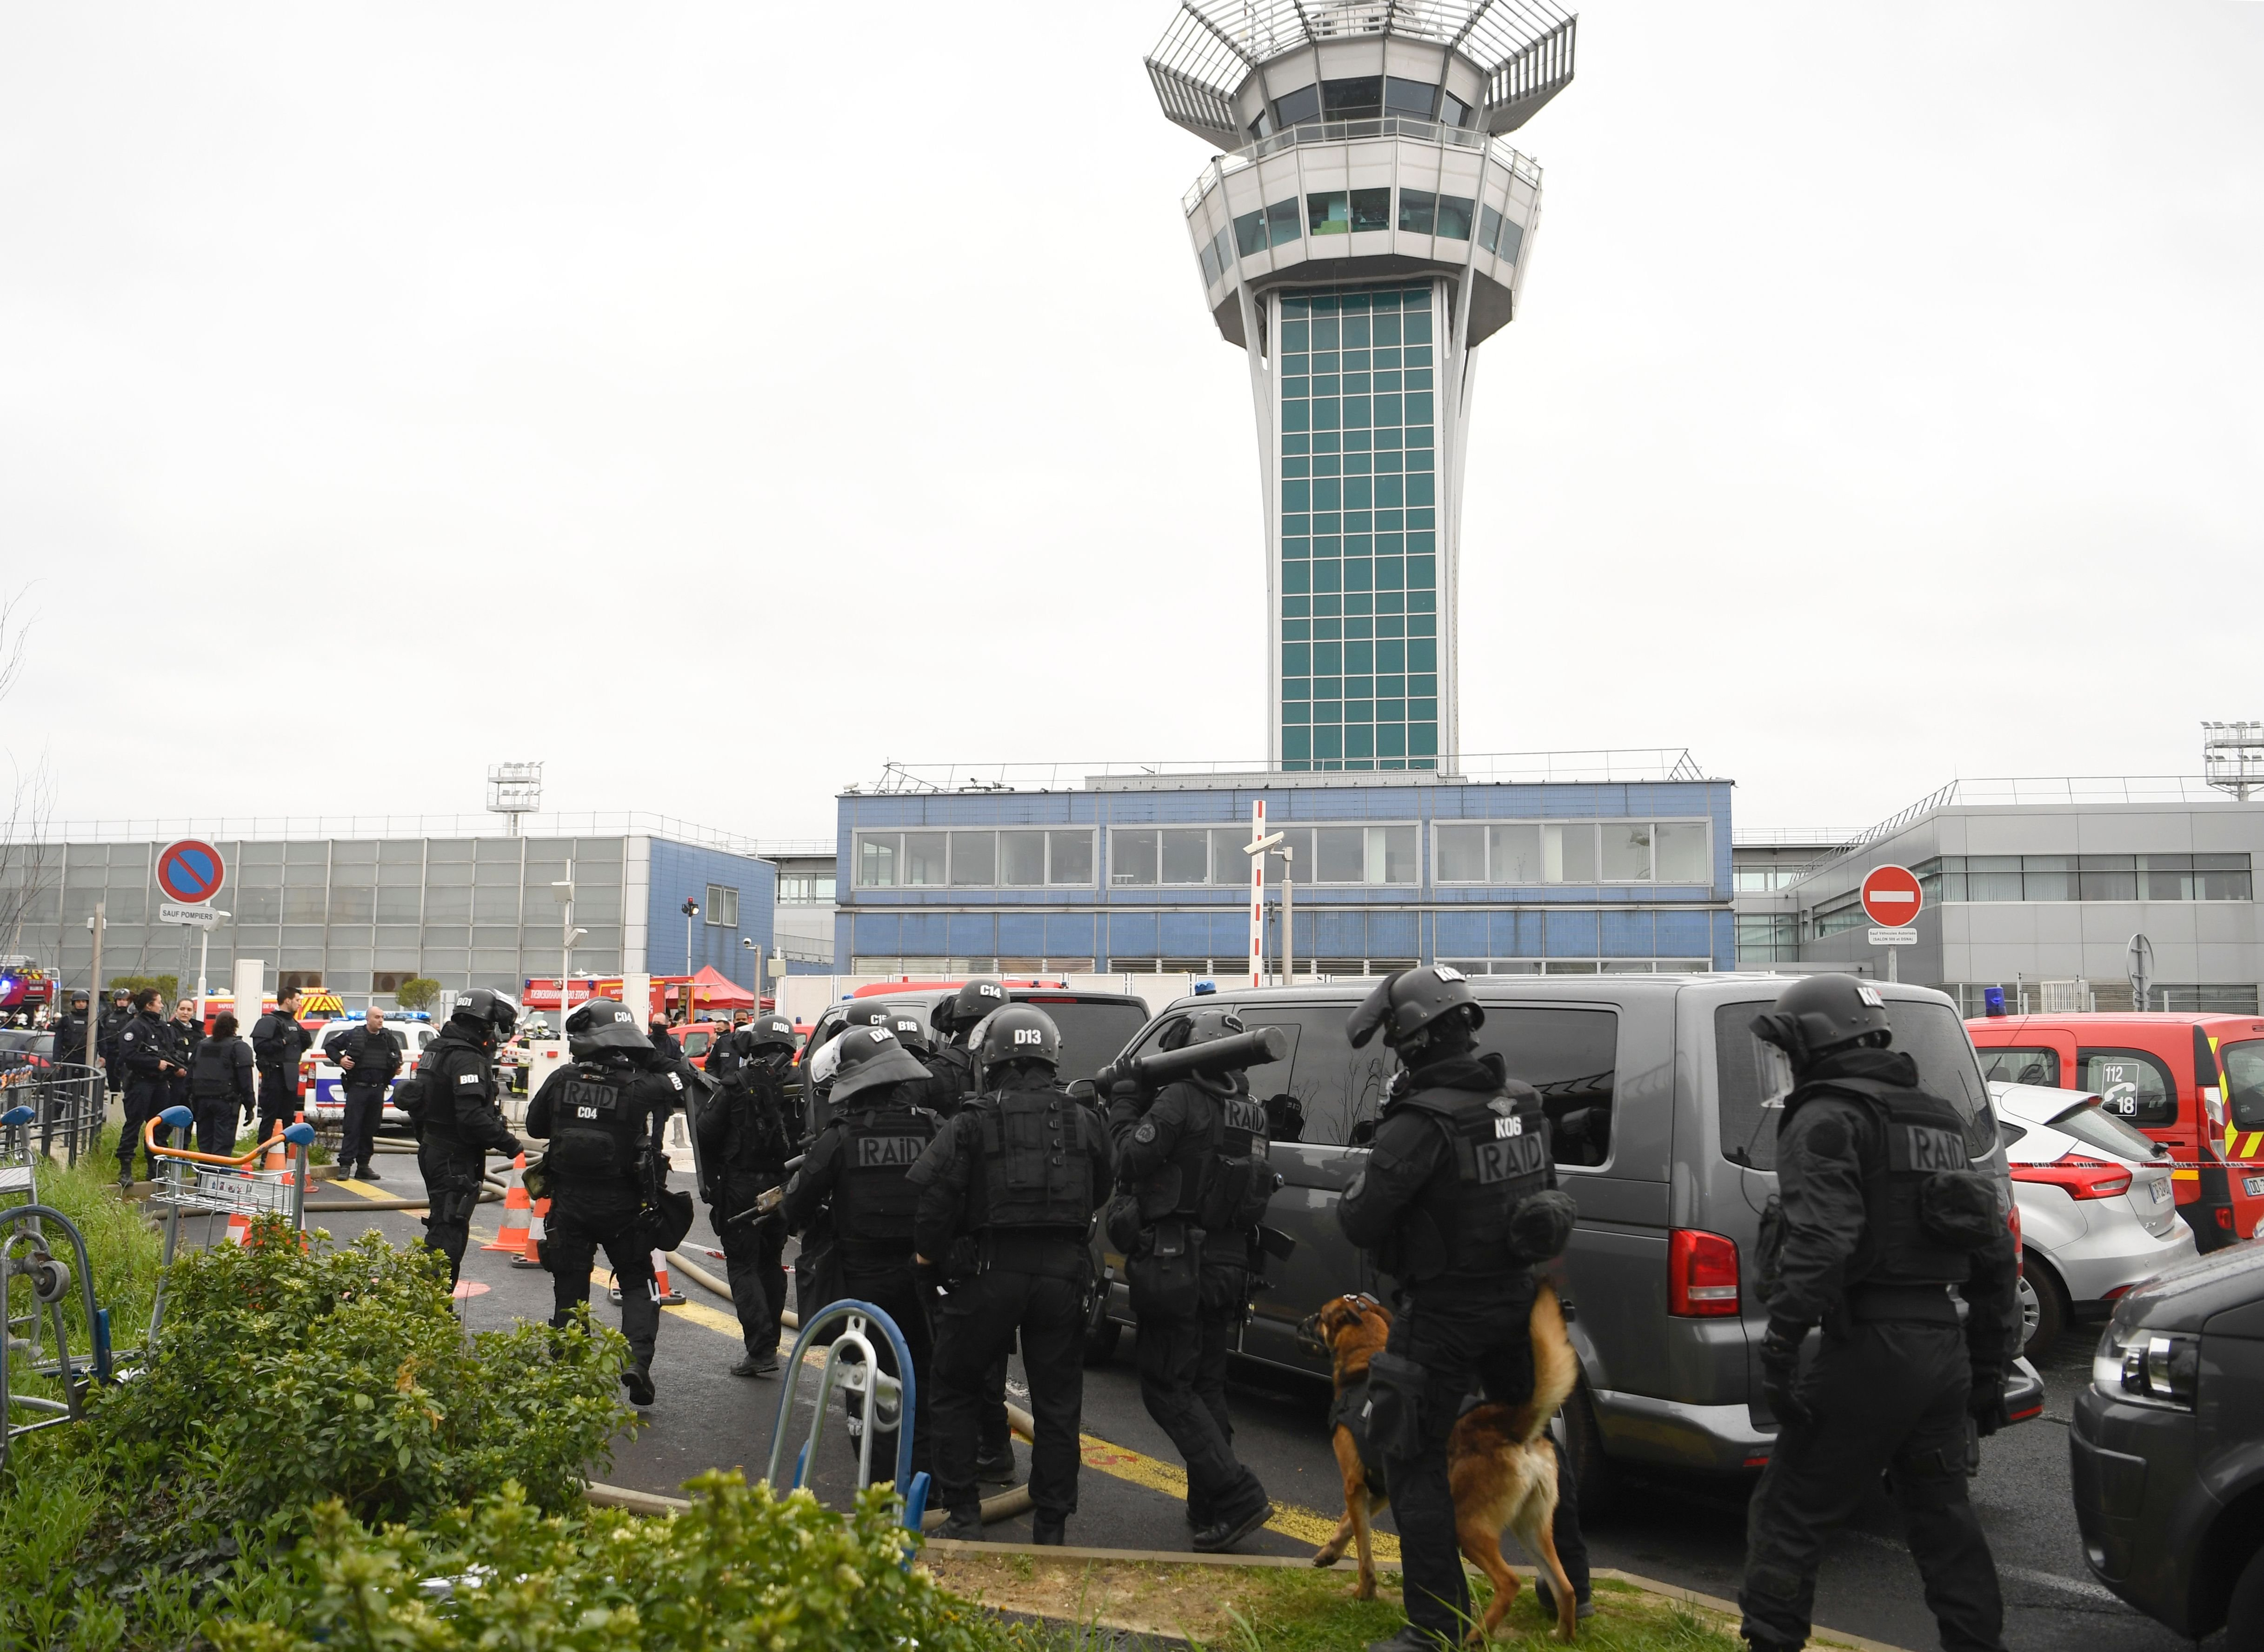 Man-Killed-in-Paris-Airport-After-Grabbing-Soldier's-Weapon:-Cops